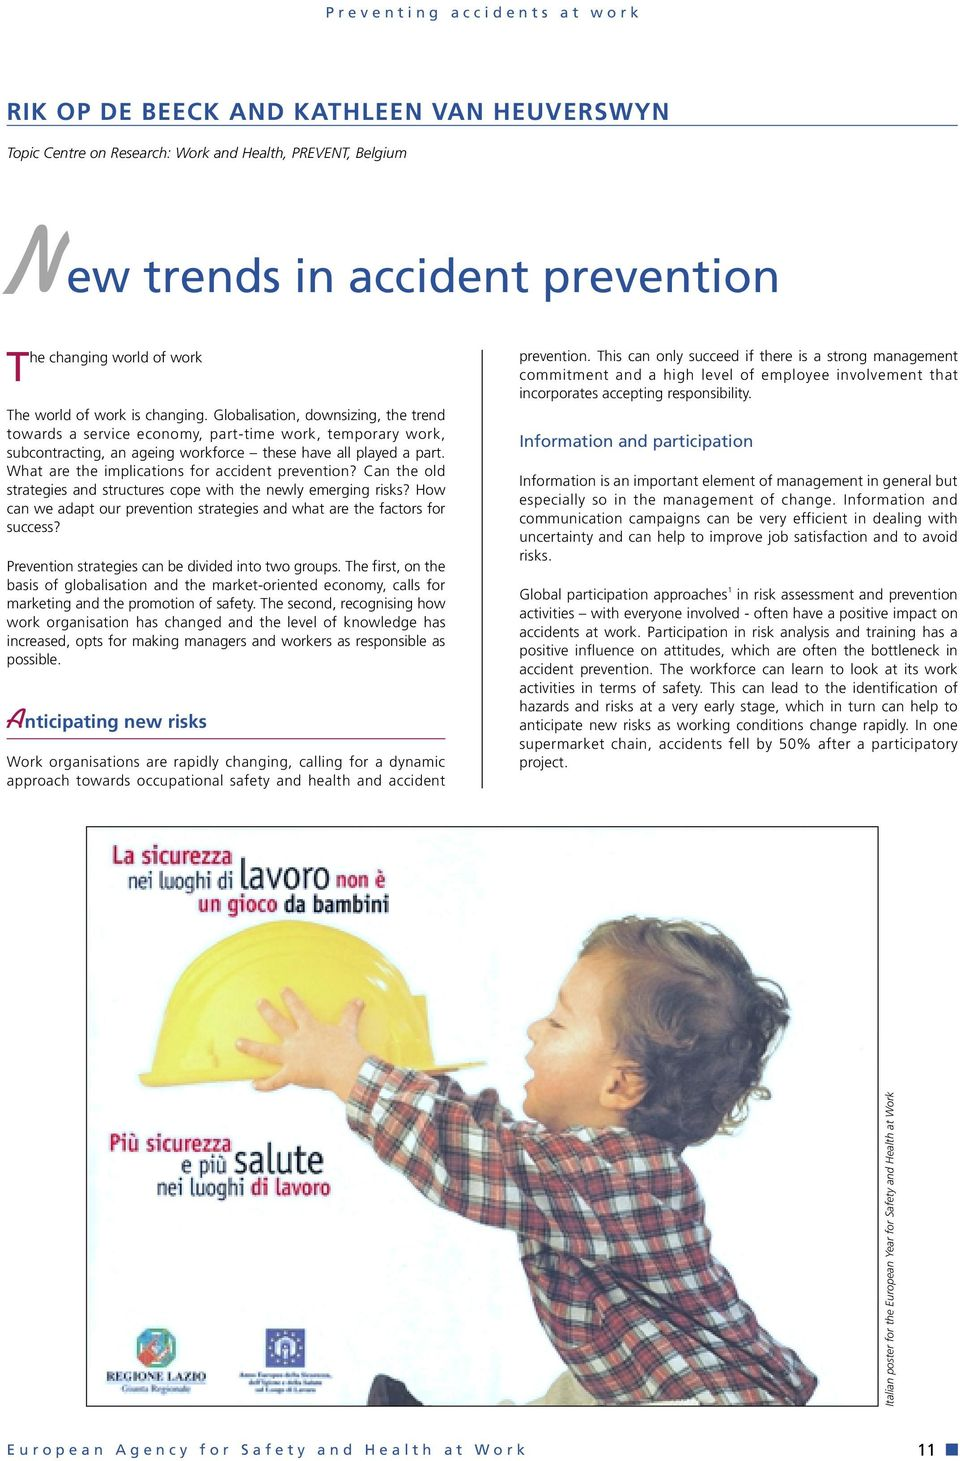 What are the implications for accident prevention? Can the old strategies and structures cope with the newly emerging risks?